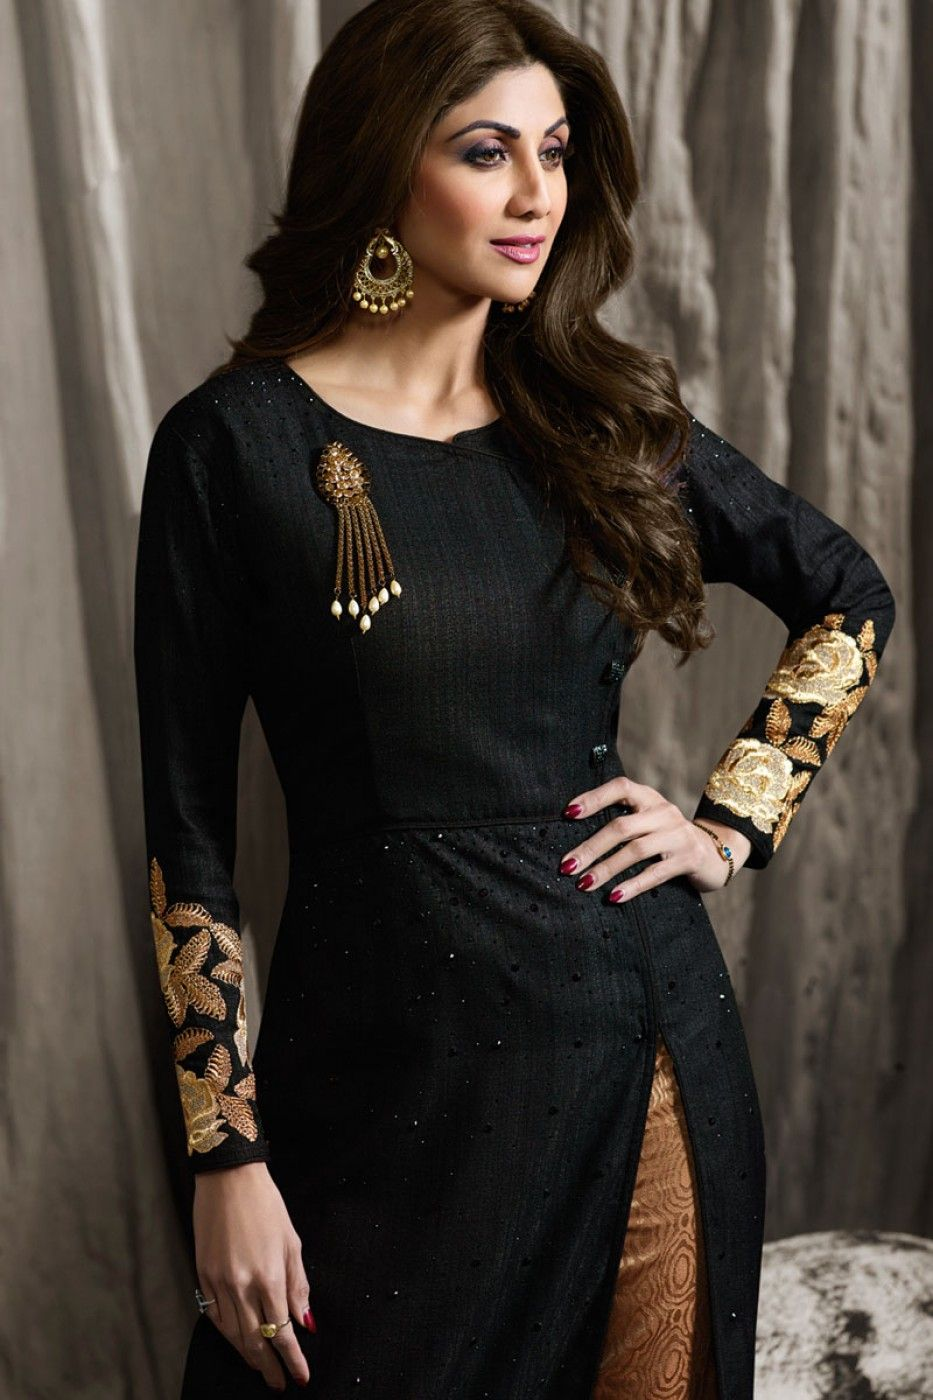 b5fcf6a45a Black Heavy Designer Embroidered Festive Look Shilpa Shetty Party Wear  Straight Pant Style Suit